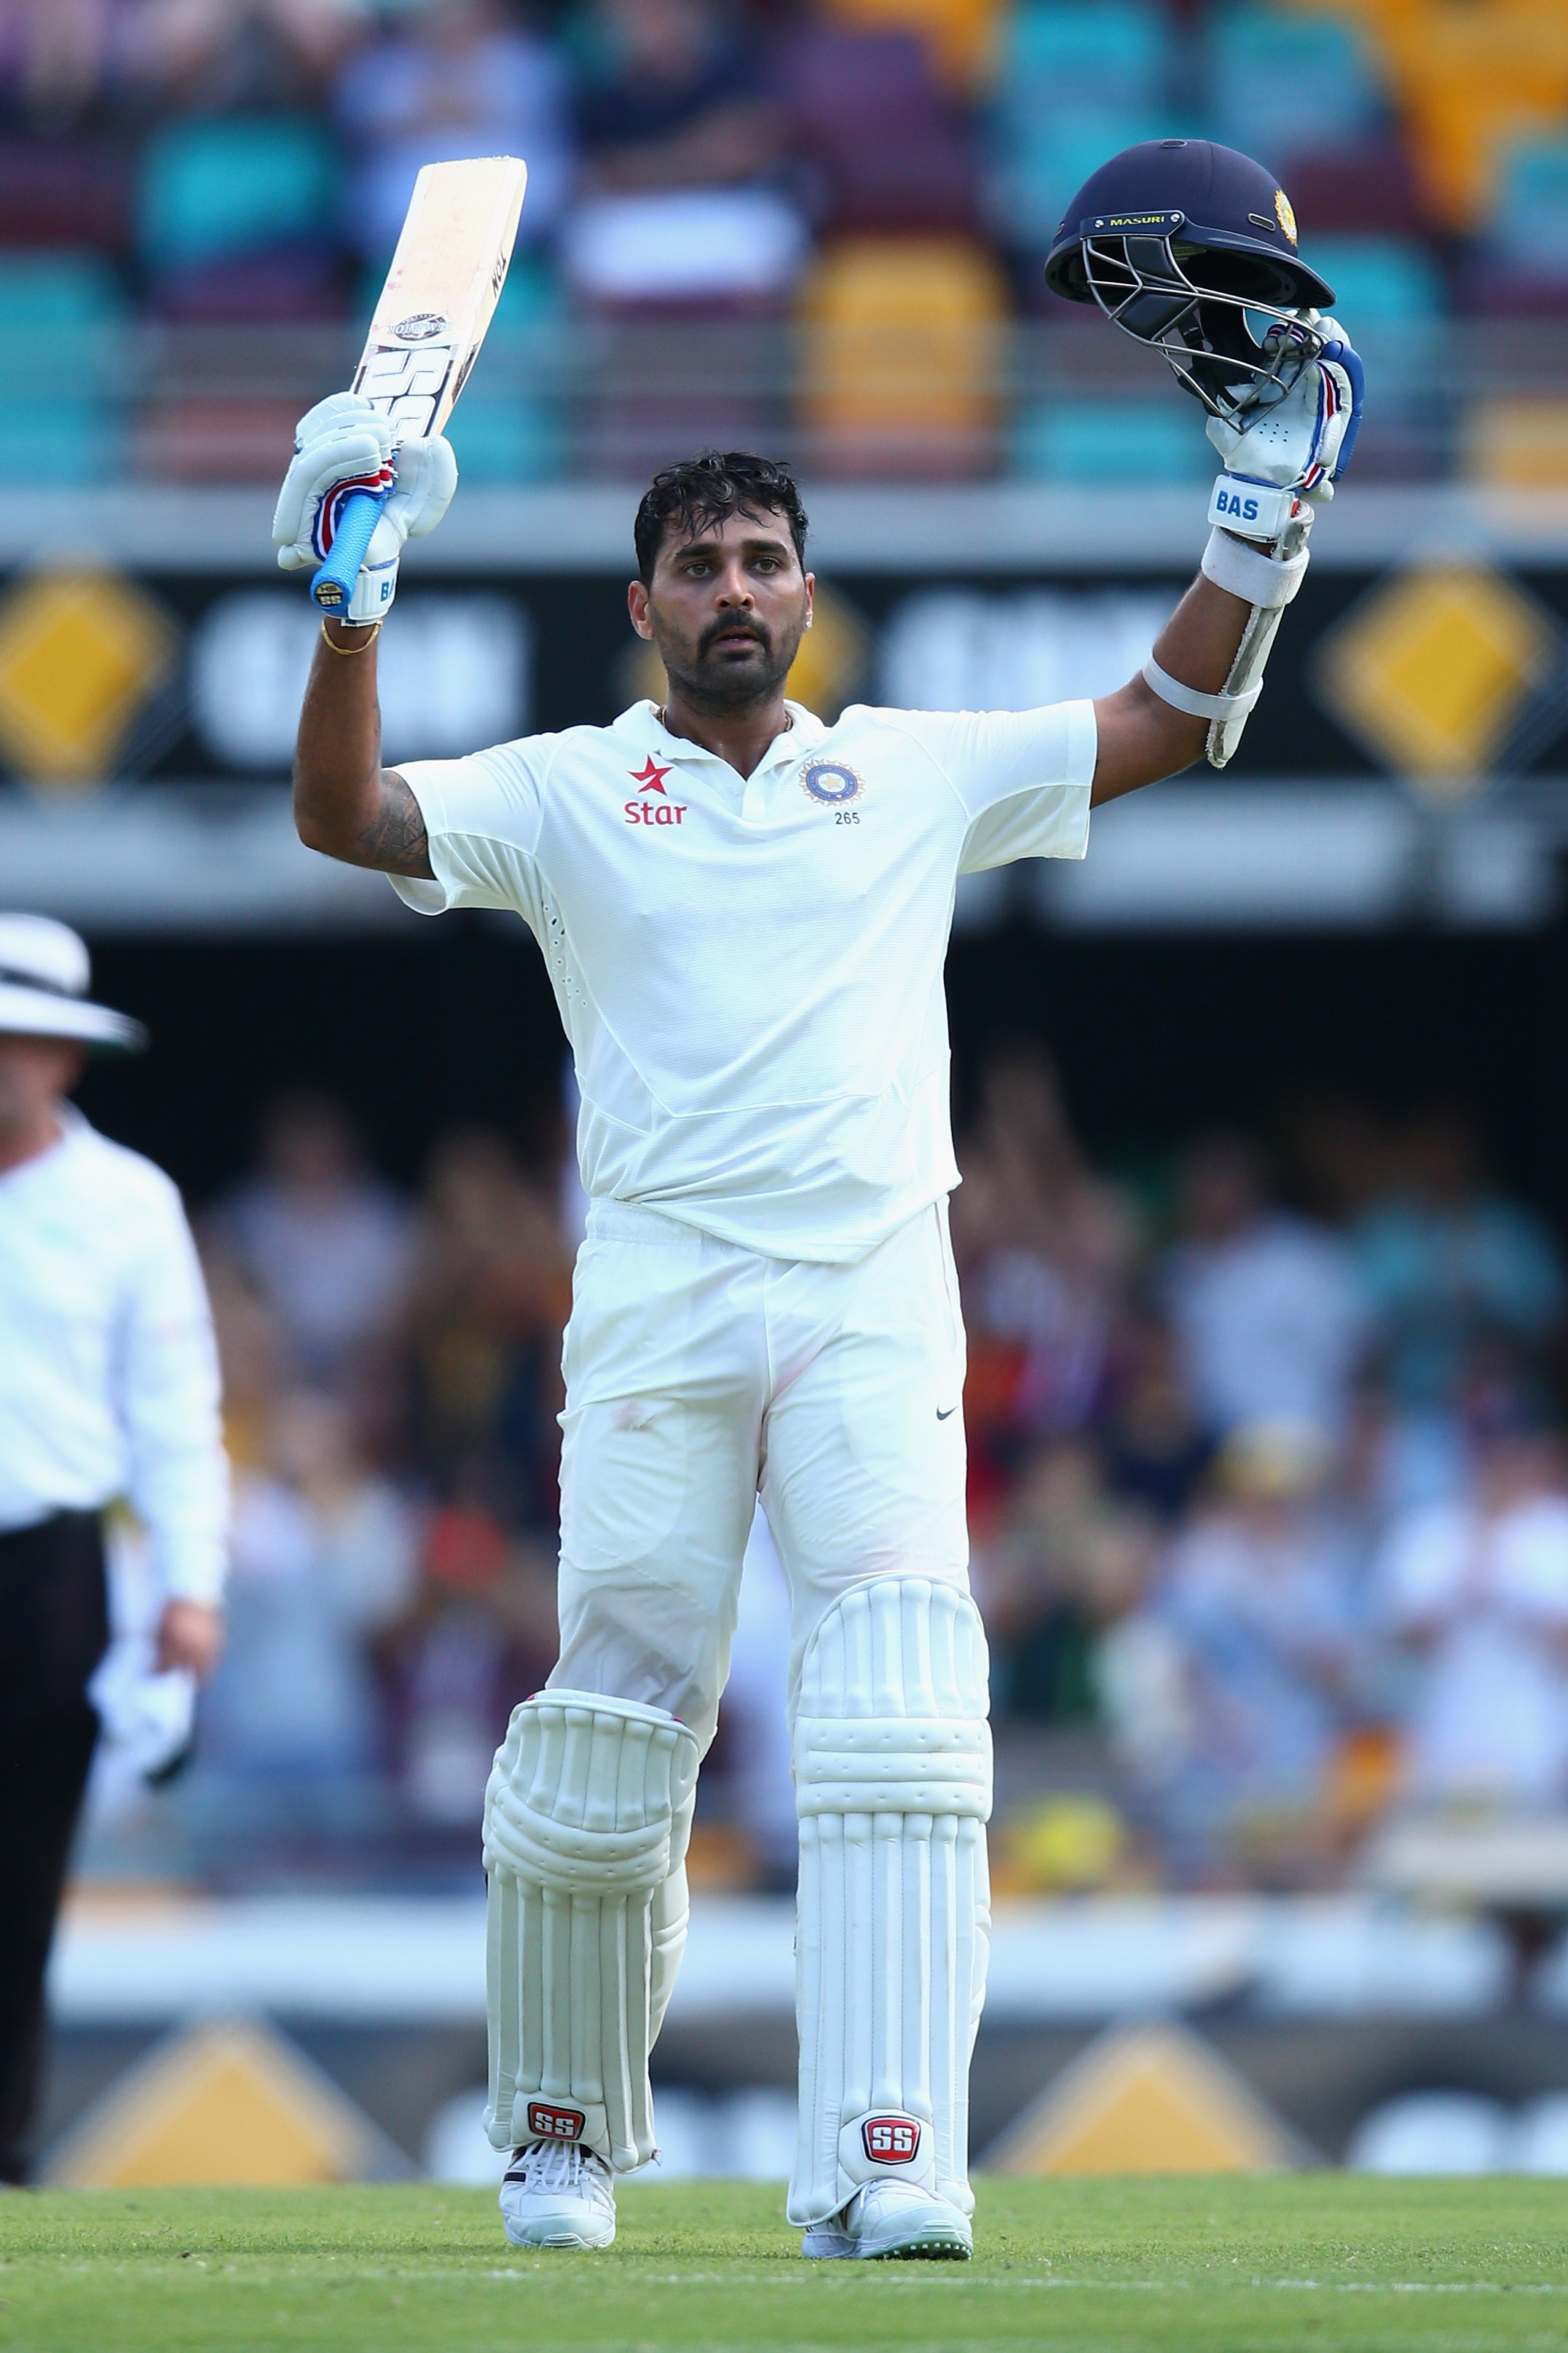 Not many batsmen can puff their chest out and say they excelled in their first Test at the bouncy Gabba. (Getty)